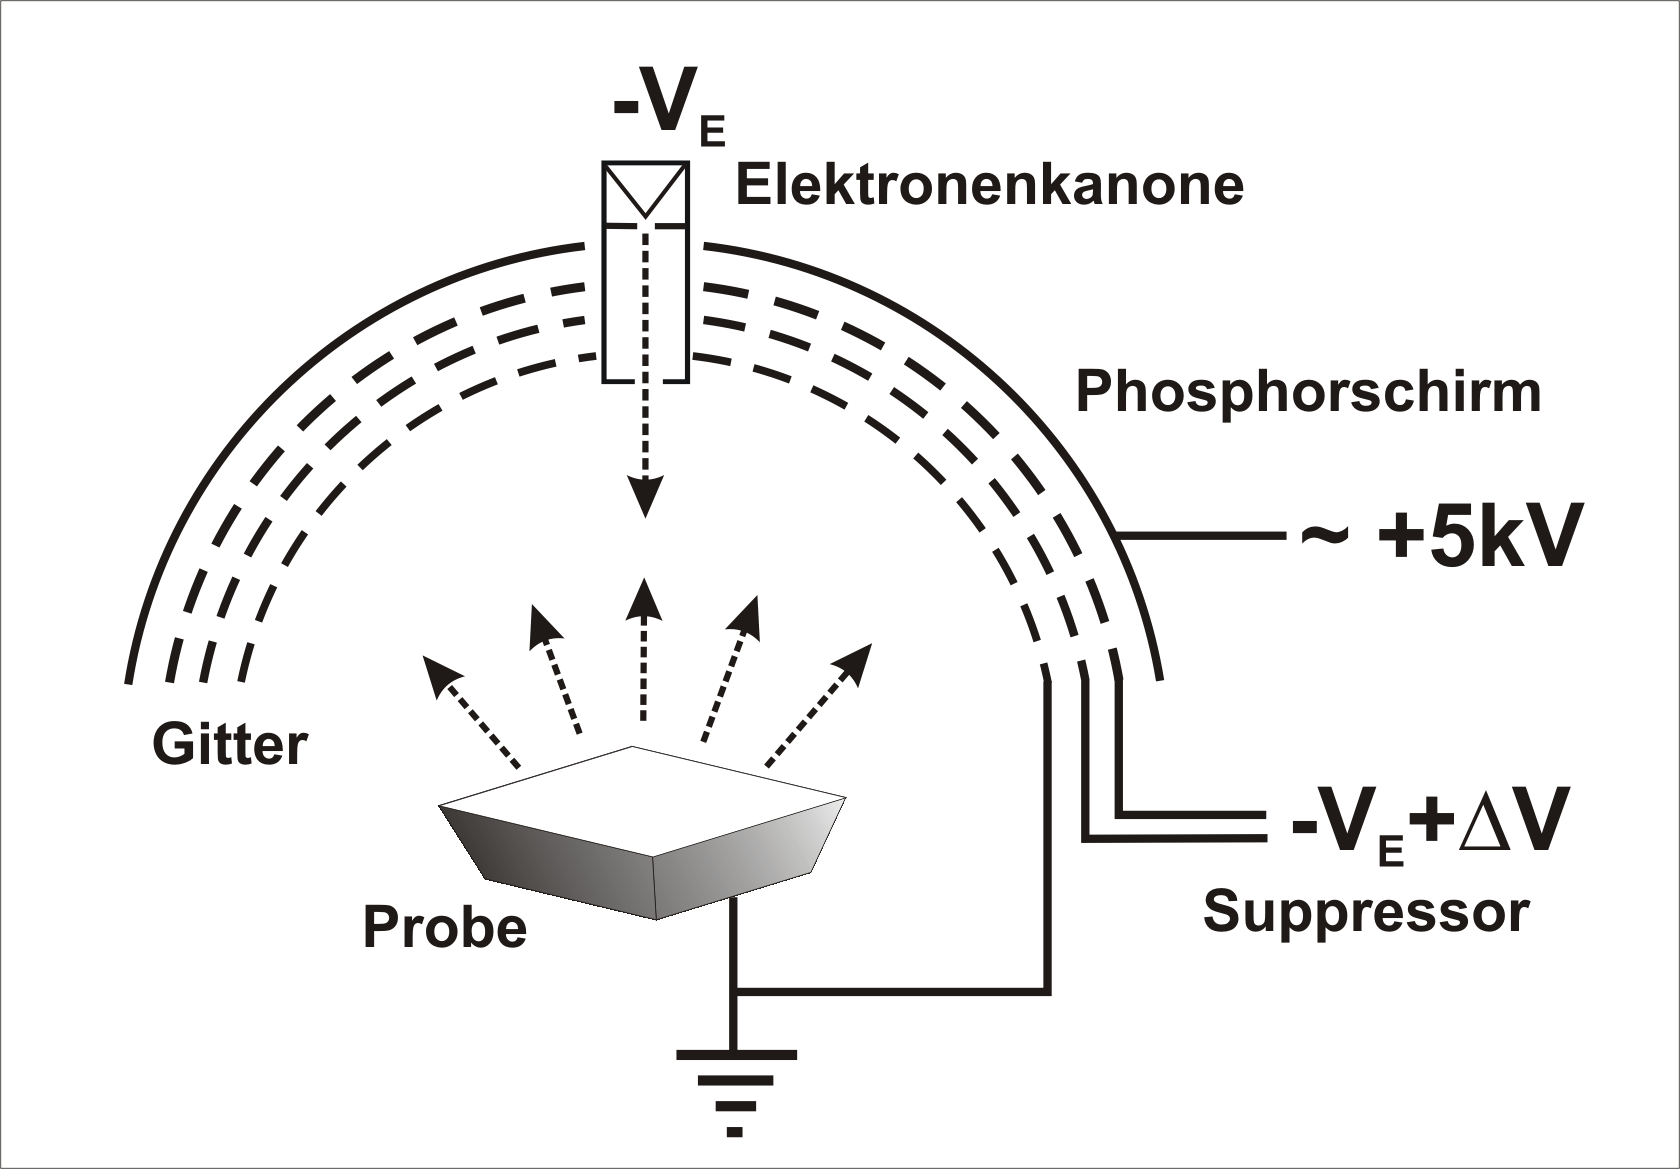 low energy electron diffraction thesis Up to the mid-1980′s low energy electron diffraction (leed) was considered as  a  high resolution electron energy loss spectroscopy  diploma thesis, univ.